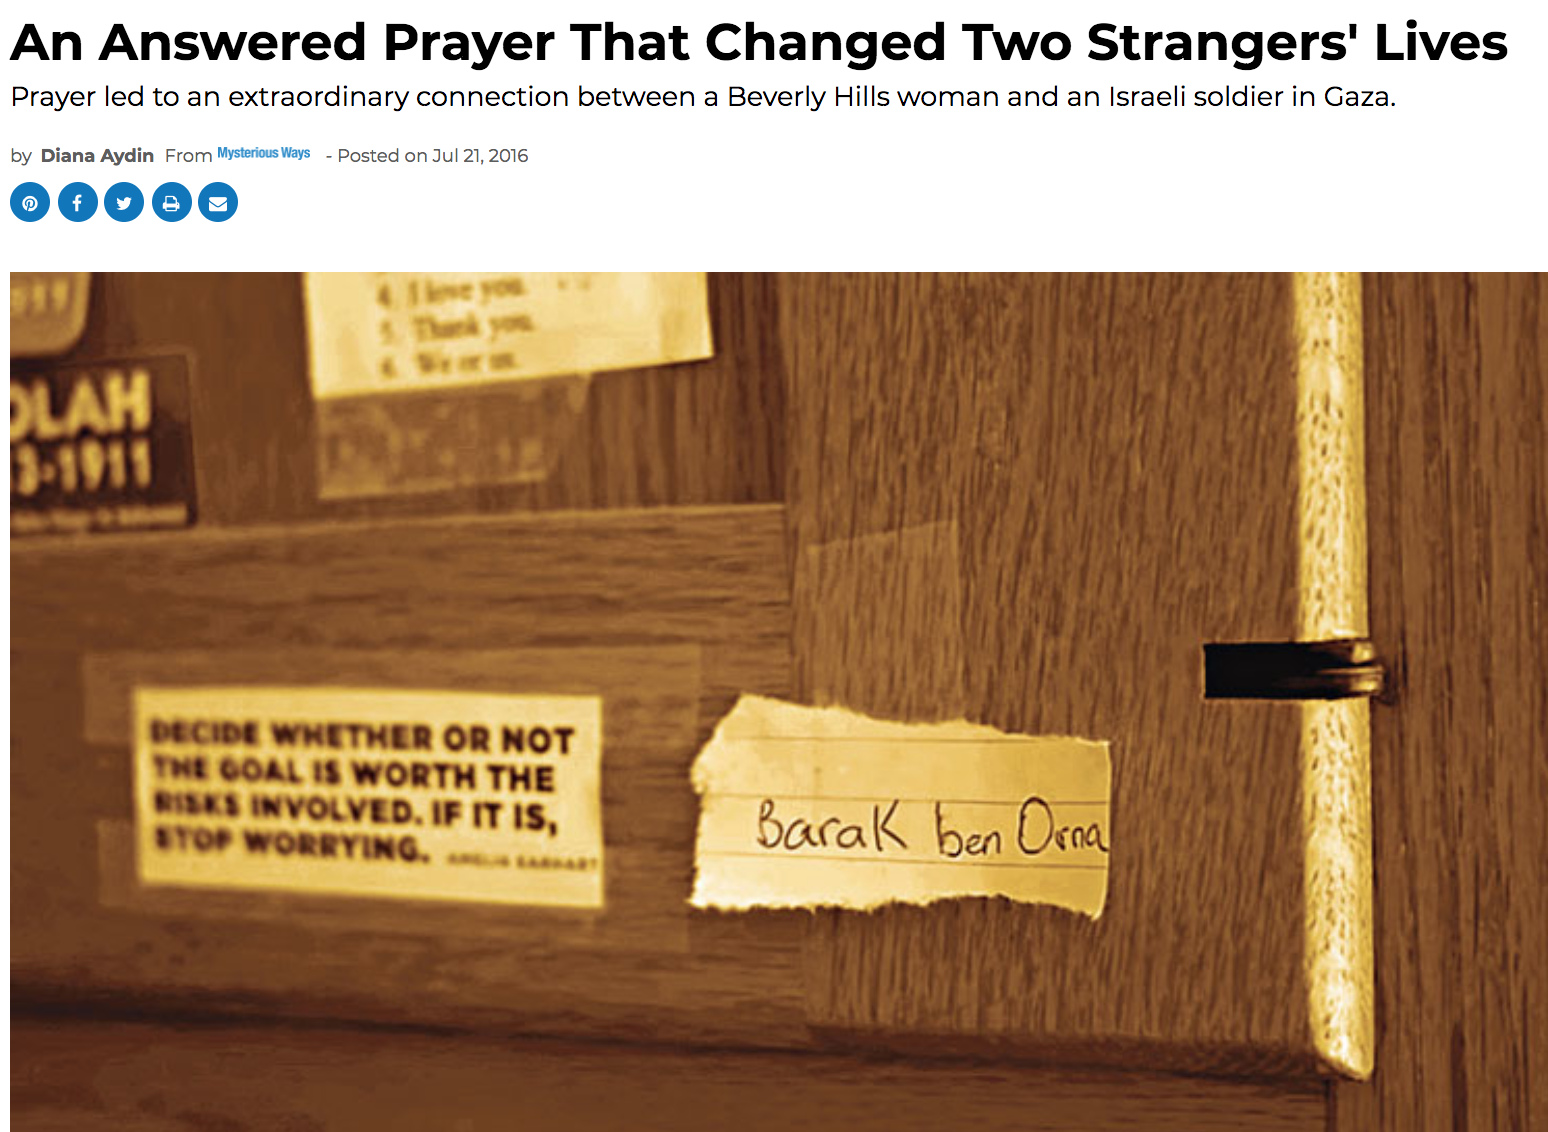 An Answered Prayer That Changed Two Strangers' Lives